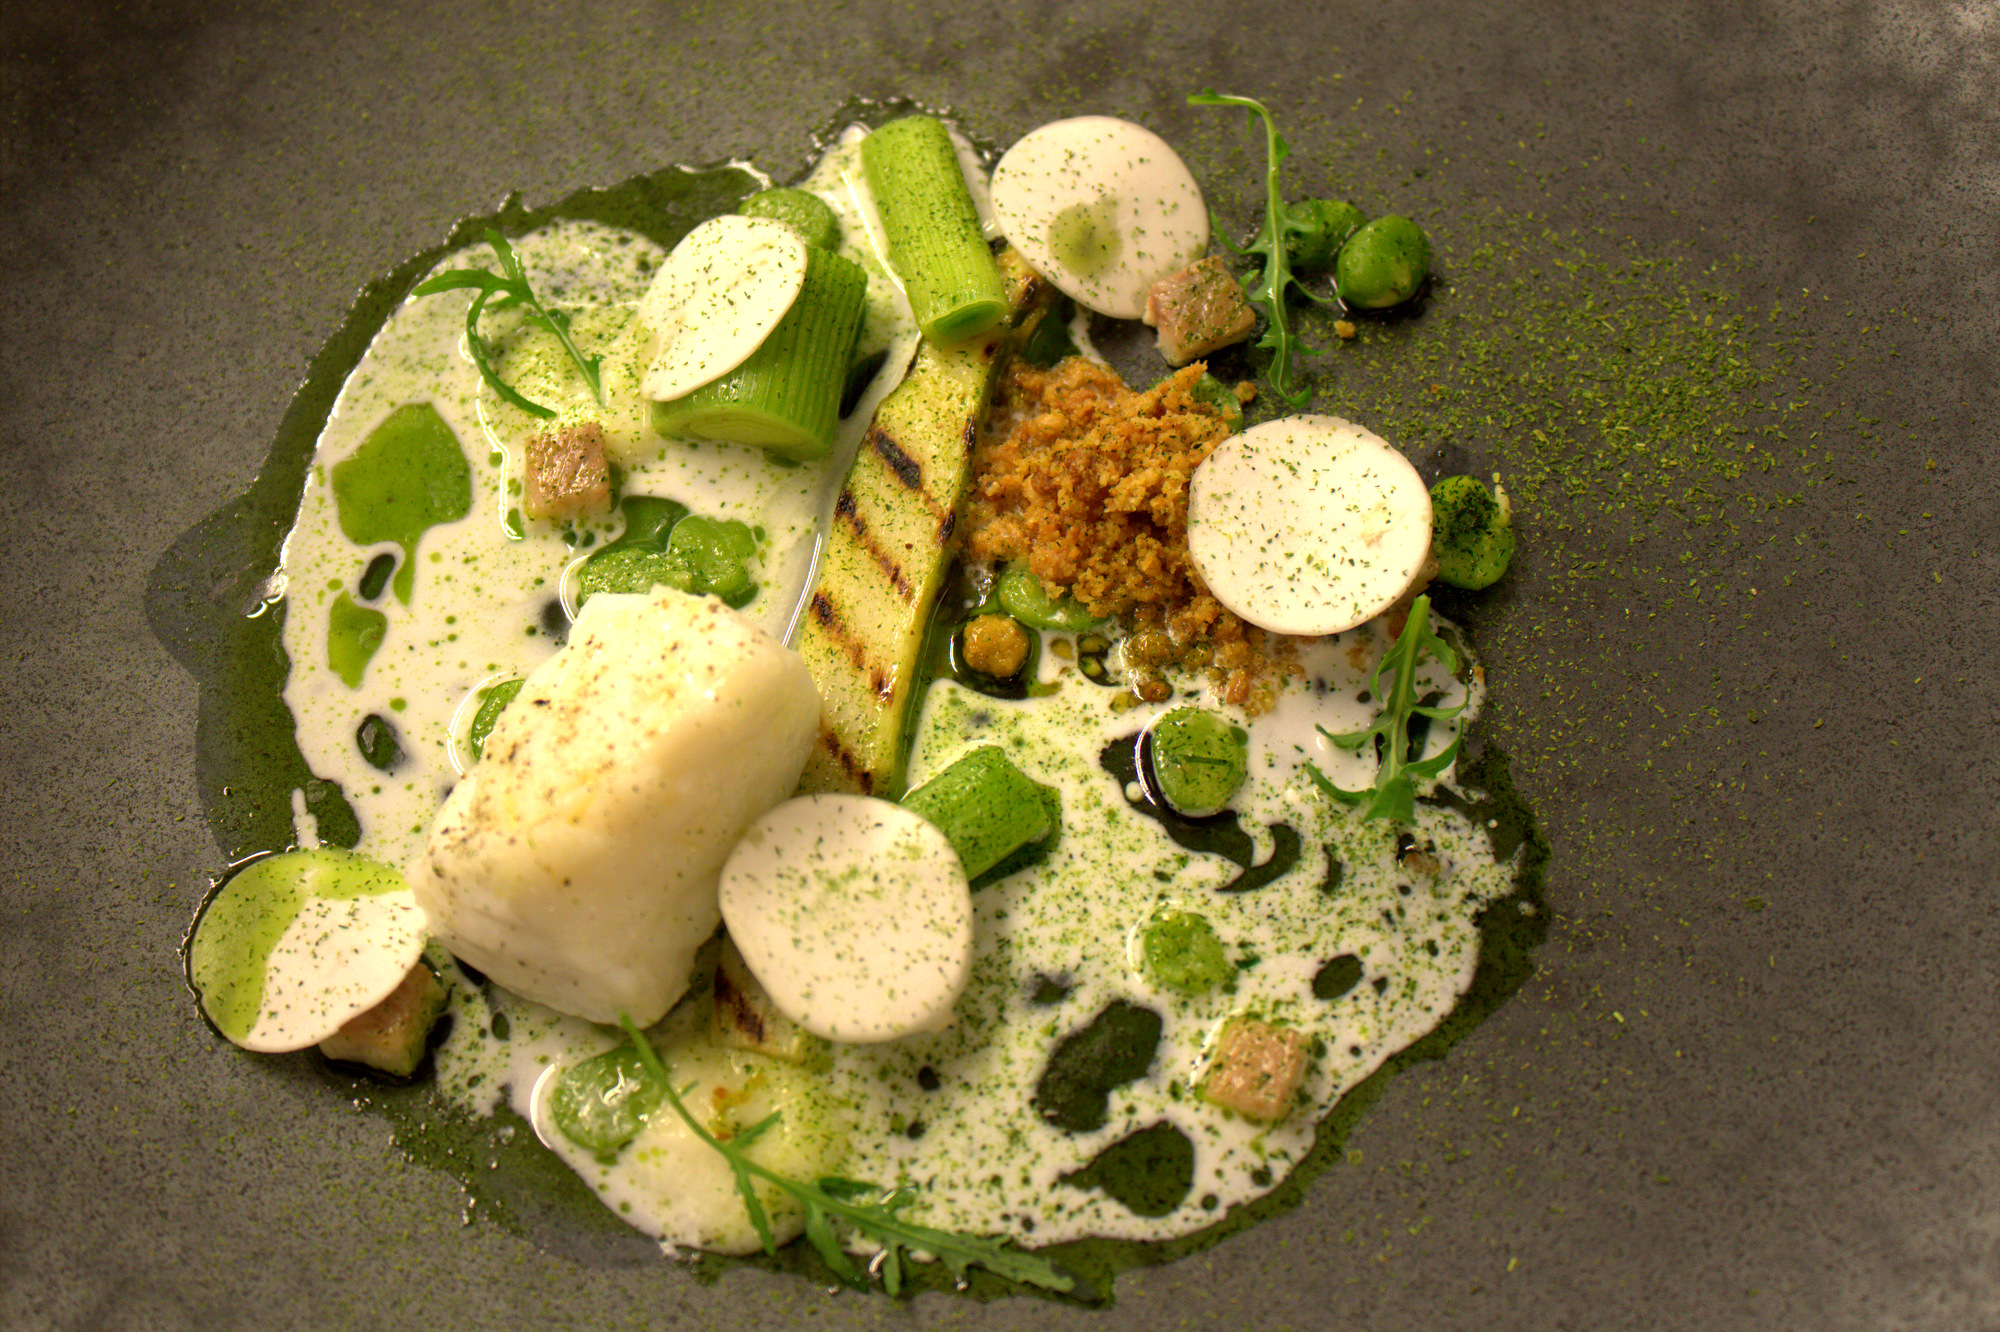 Cod with Parmesan crumble and cream, smoked eels, asparagus, peas, buttermilk and a rocket sauce